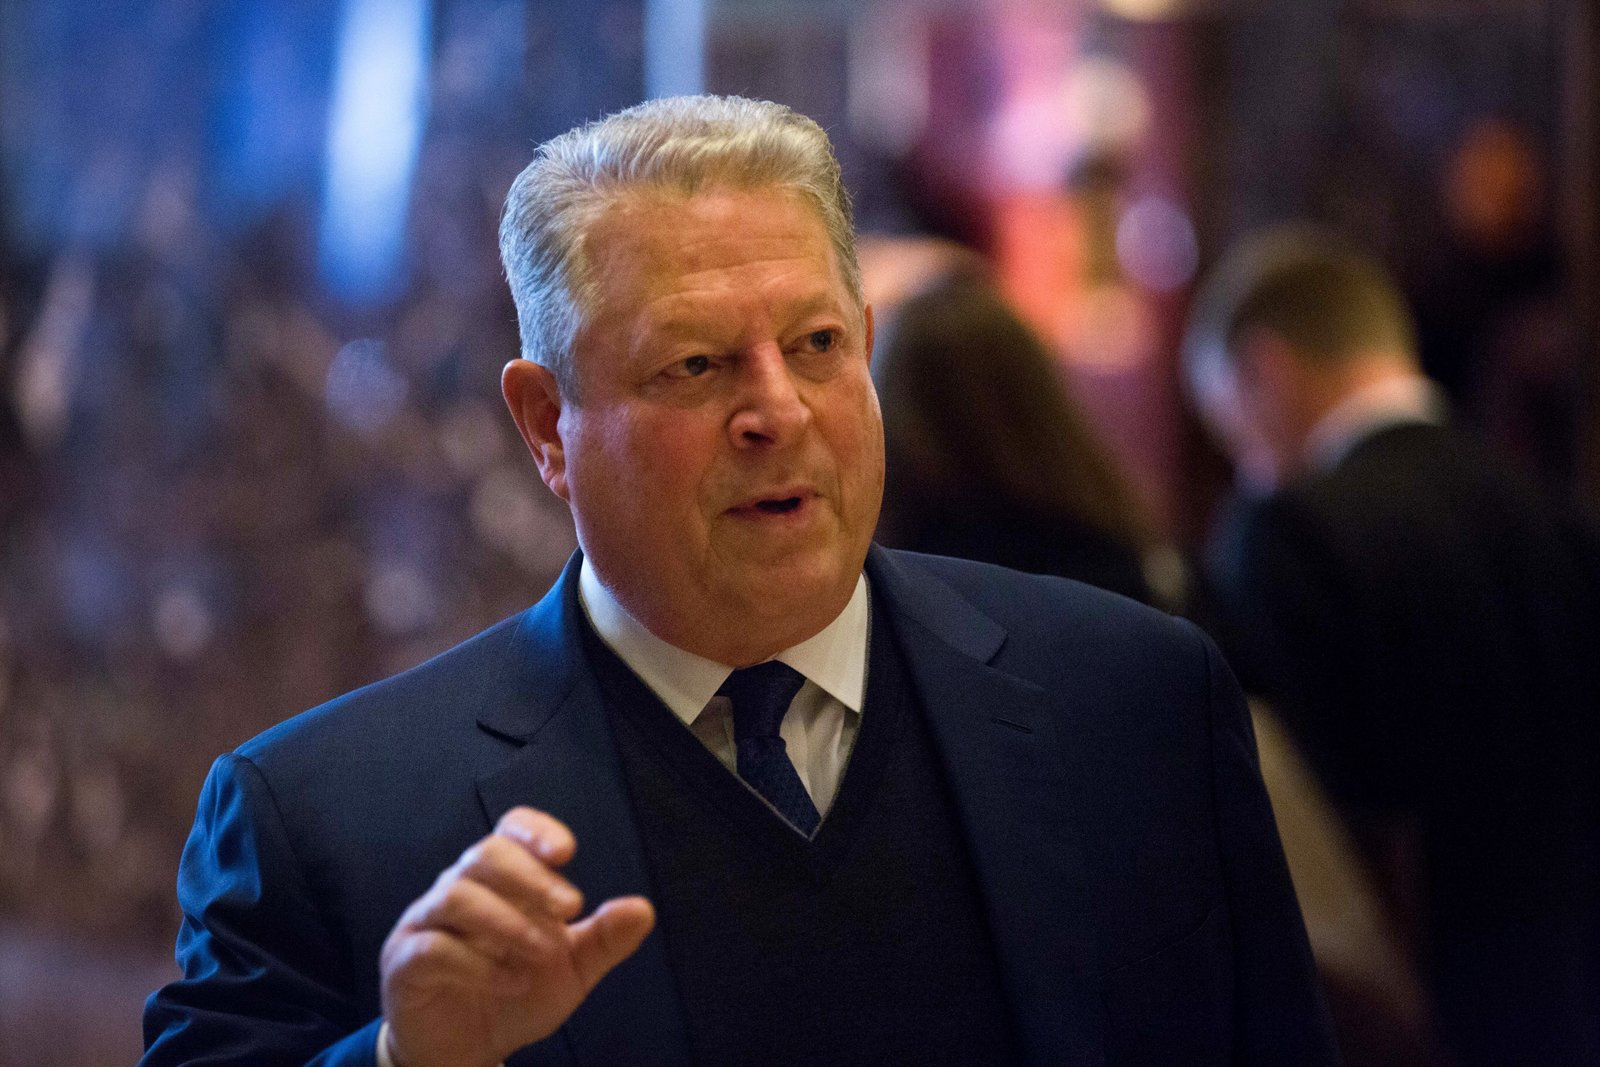 Al Gore helped organize a new climate-health summit